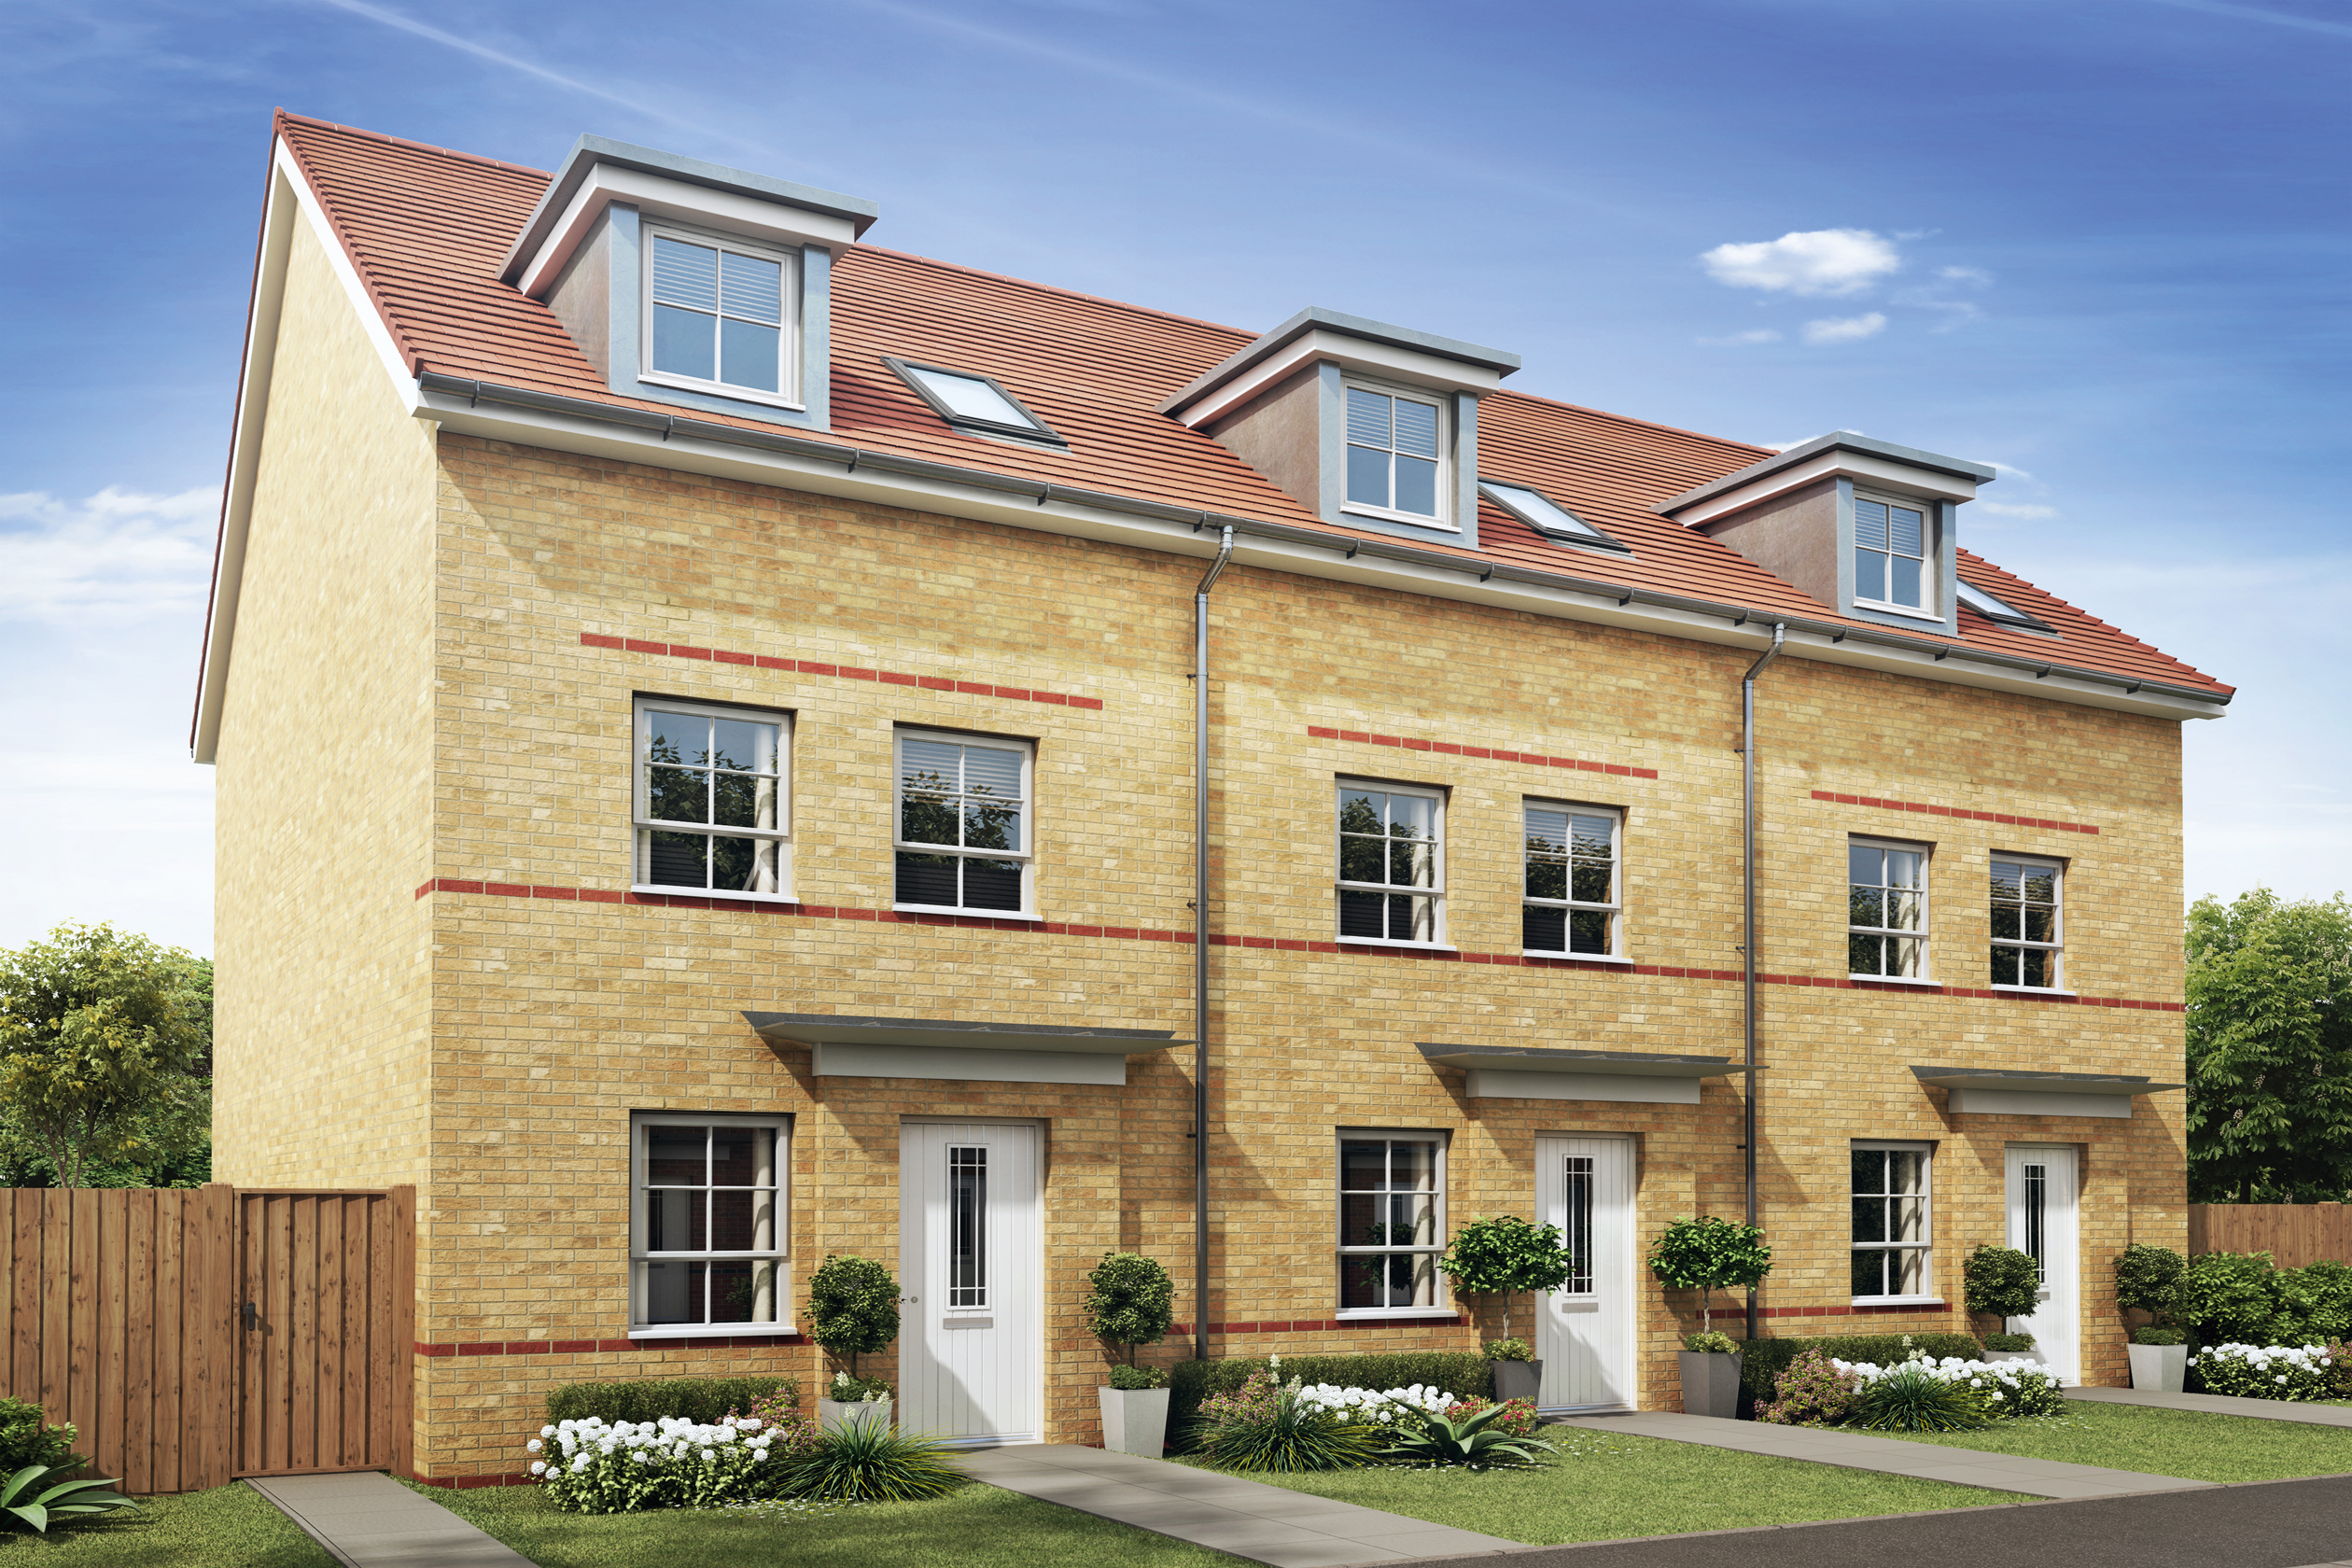 Barratt Homes, Kingsbrook, Canal Quarter, Aylesbury, Street scene, Norbury CGI